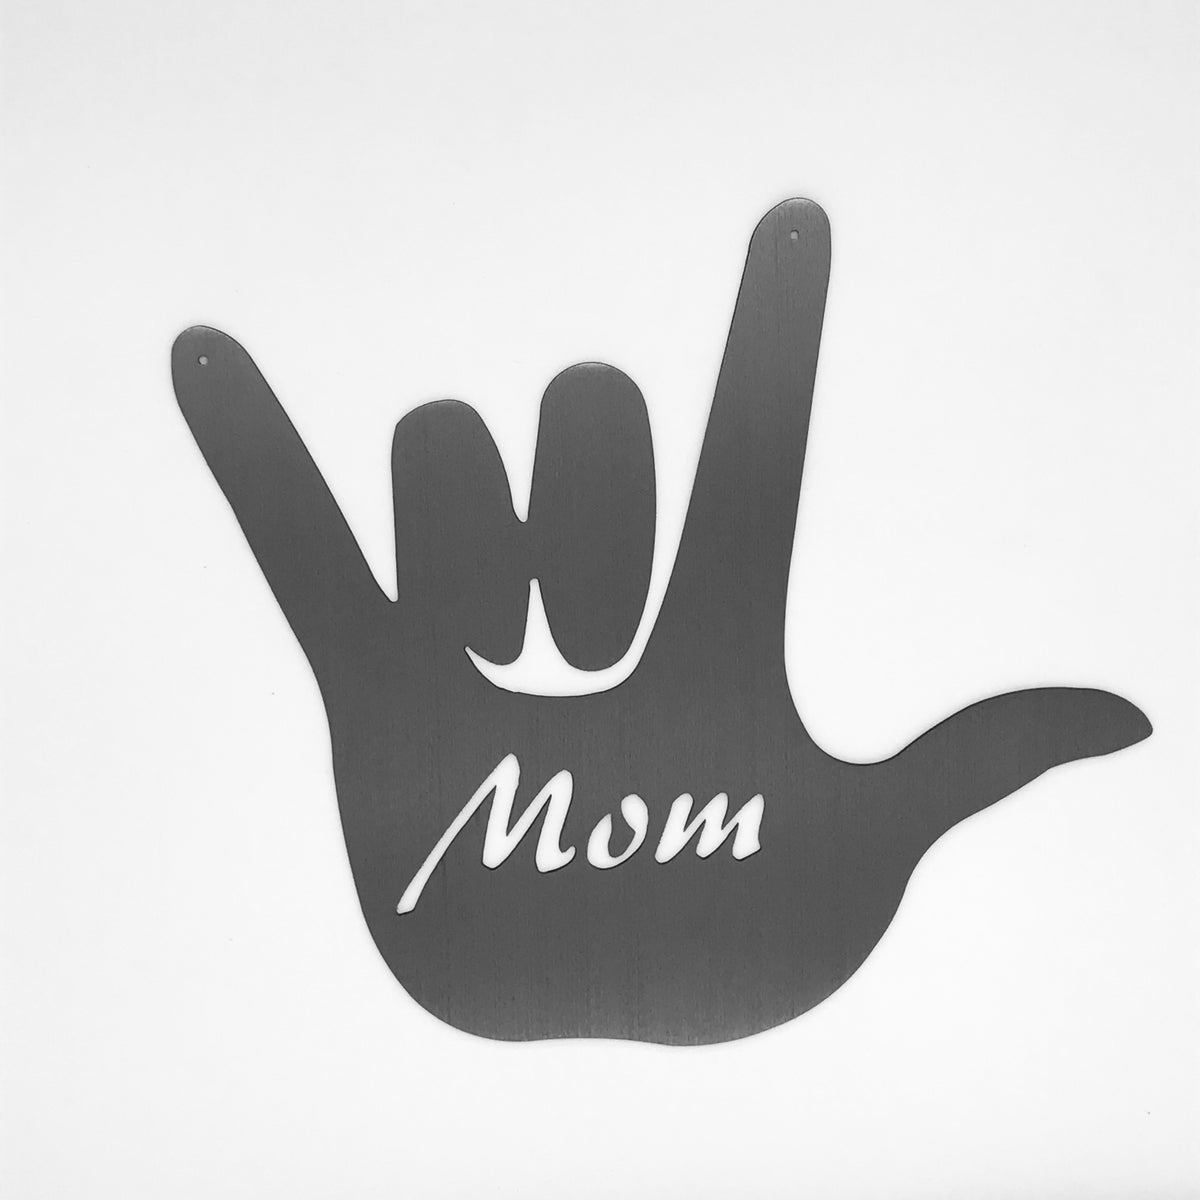 Mom - I love you